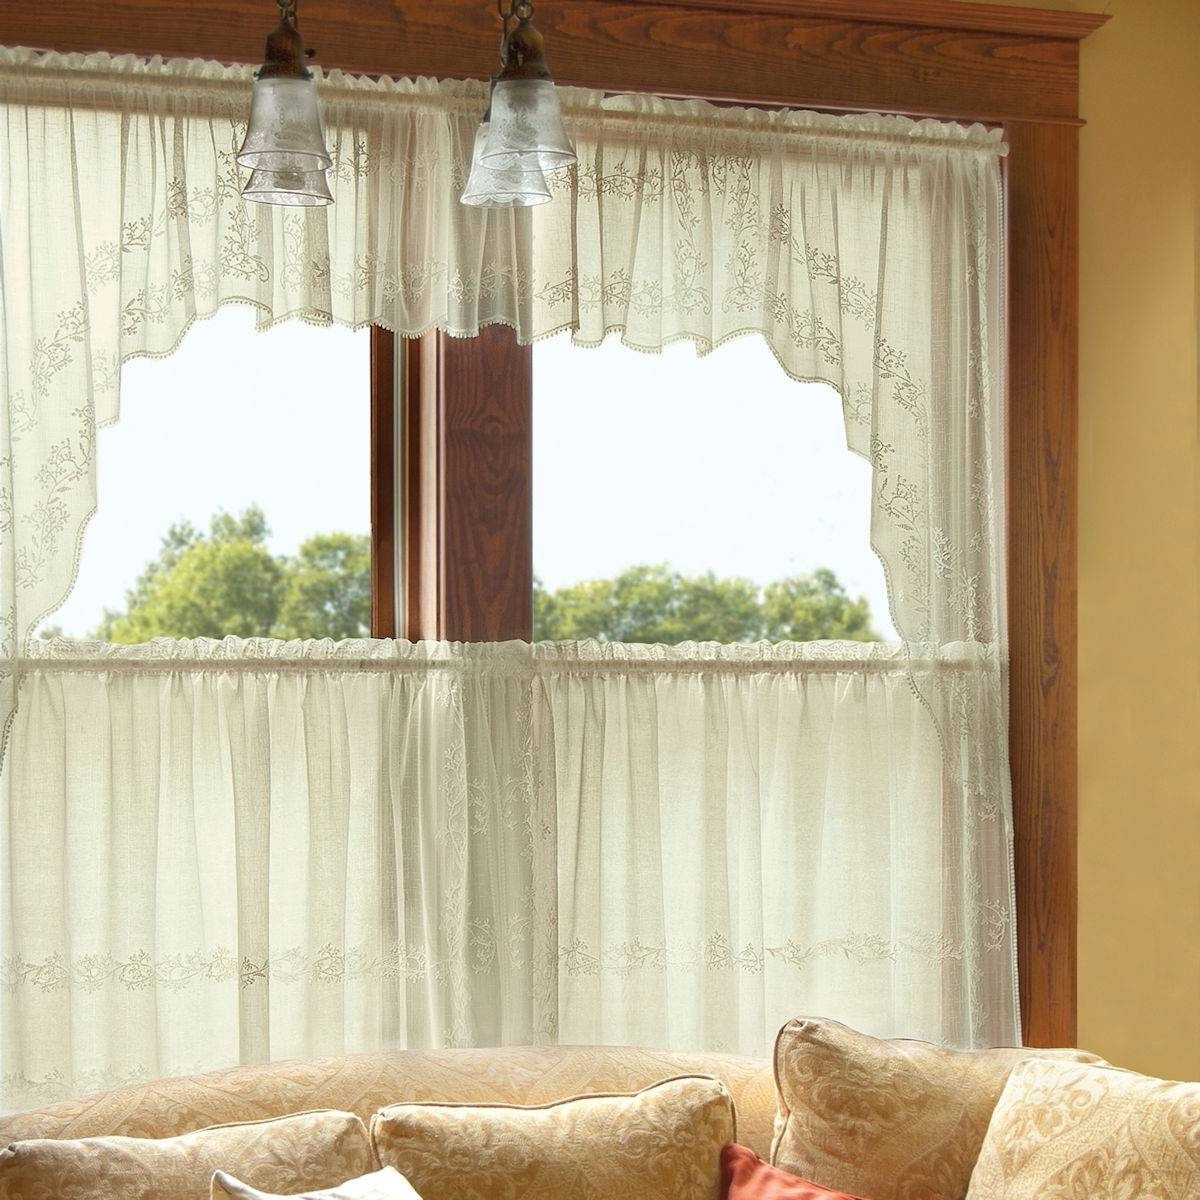 Appealing Lace Curtain Valances And Tiers Ideas Kitchen For Best And Newest Solid Microfiber 3 Piece Kitchen Curtain Valance And Tiers Sets (View 3 of 20)